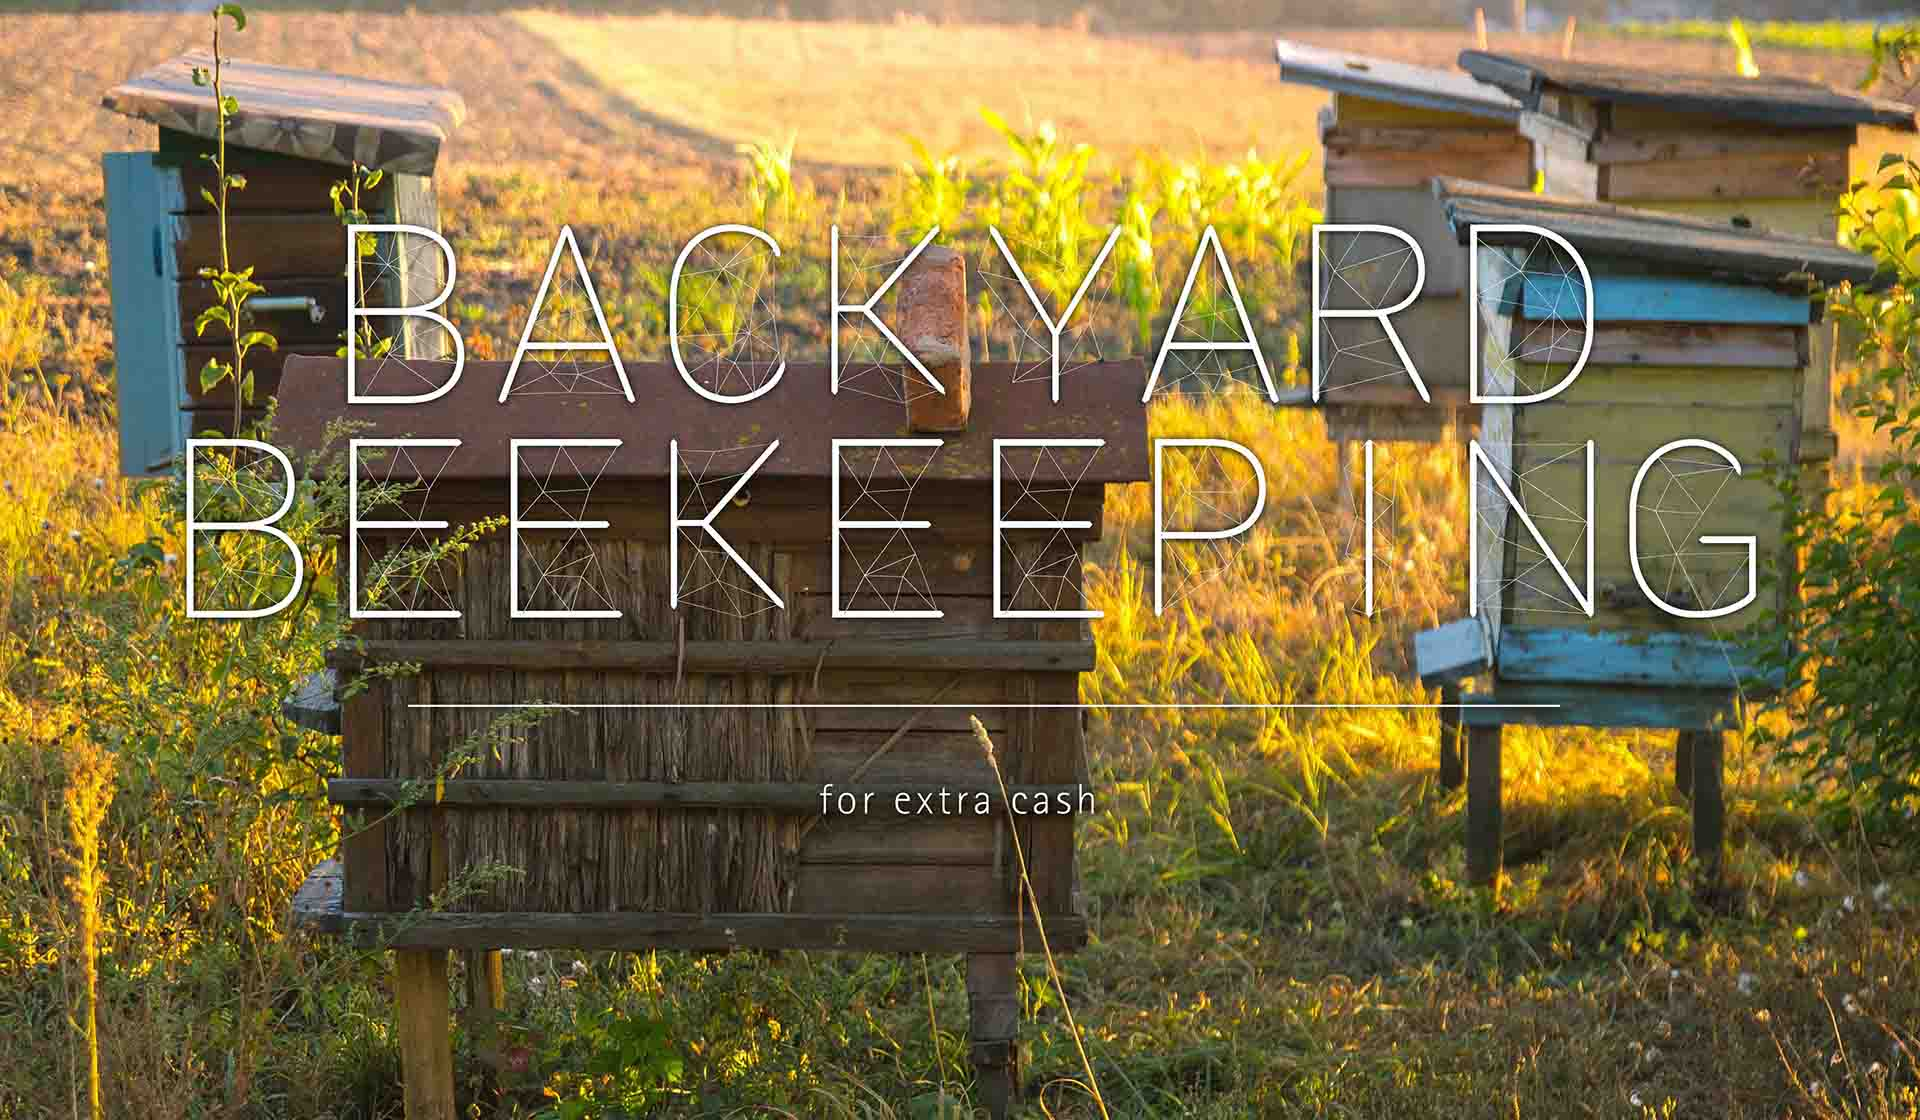 Backyard Beekeeping For Extra Cash